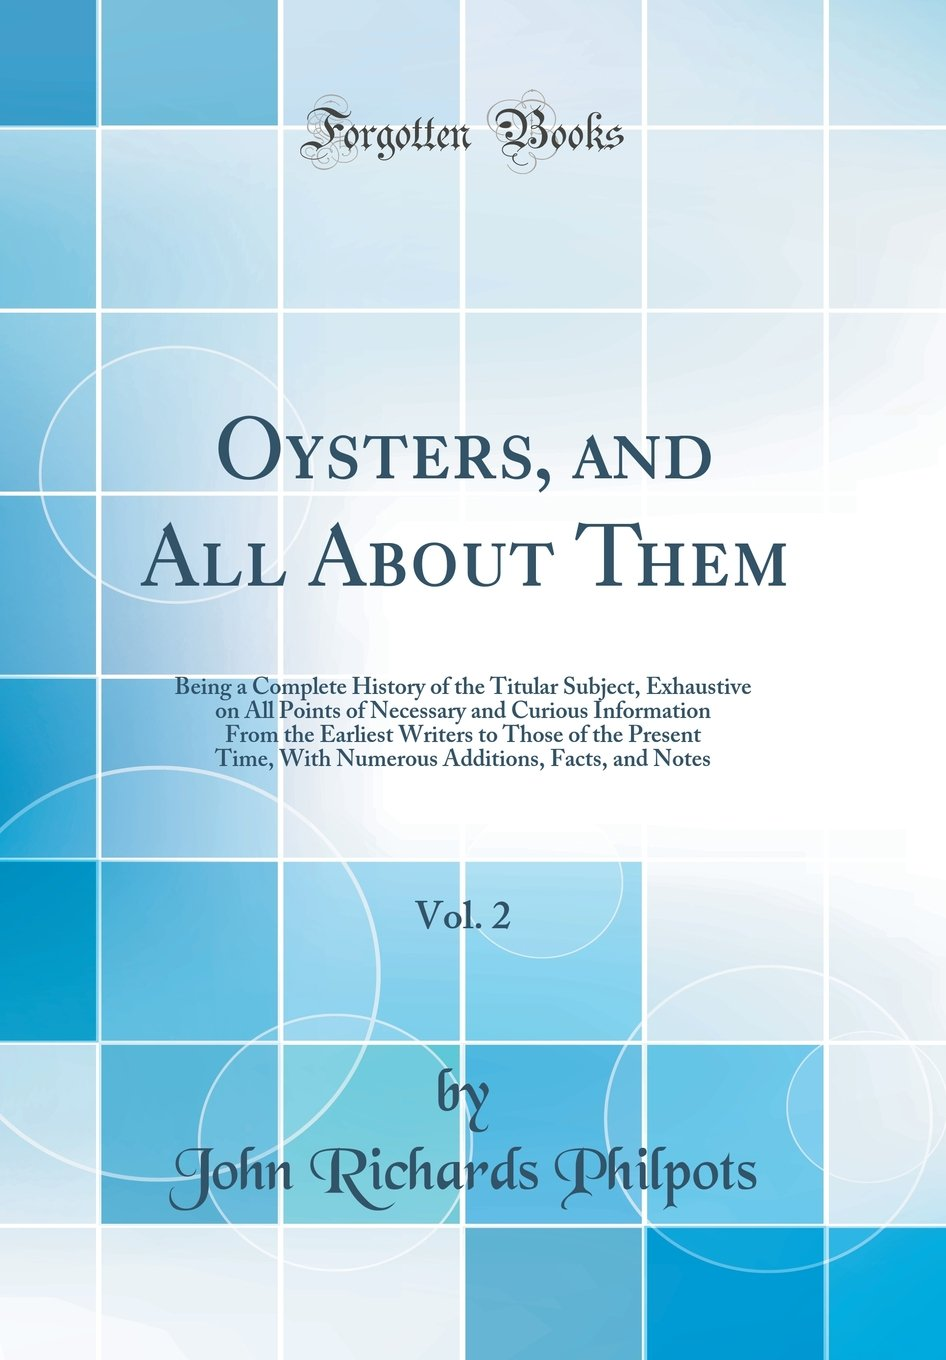 Read Online Oysters, and All About Them, Vol. 2: Being a Complete History of the Titular Subject, Exhaustive on All Points of Necessary and Curious Information ... With Numerous Additions, Facts, and Notes pdf